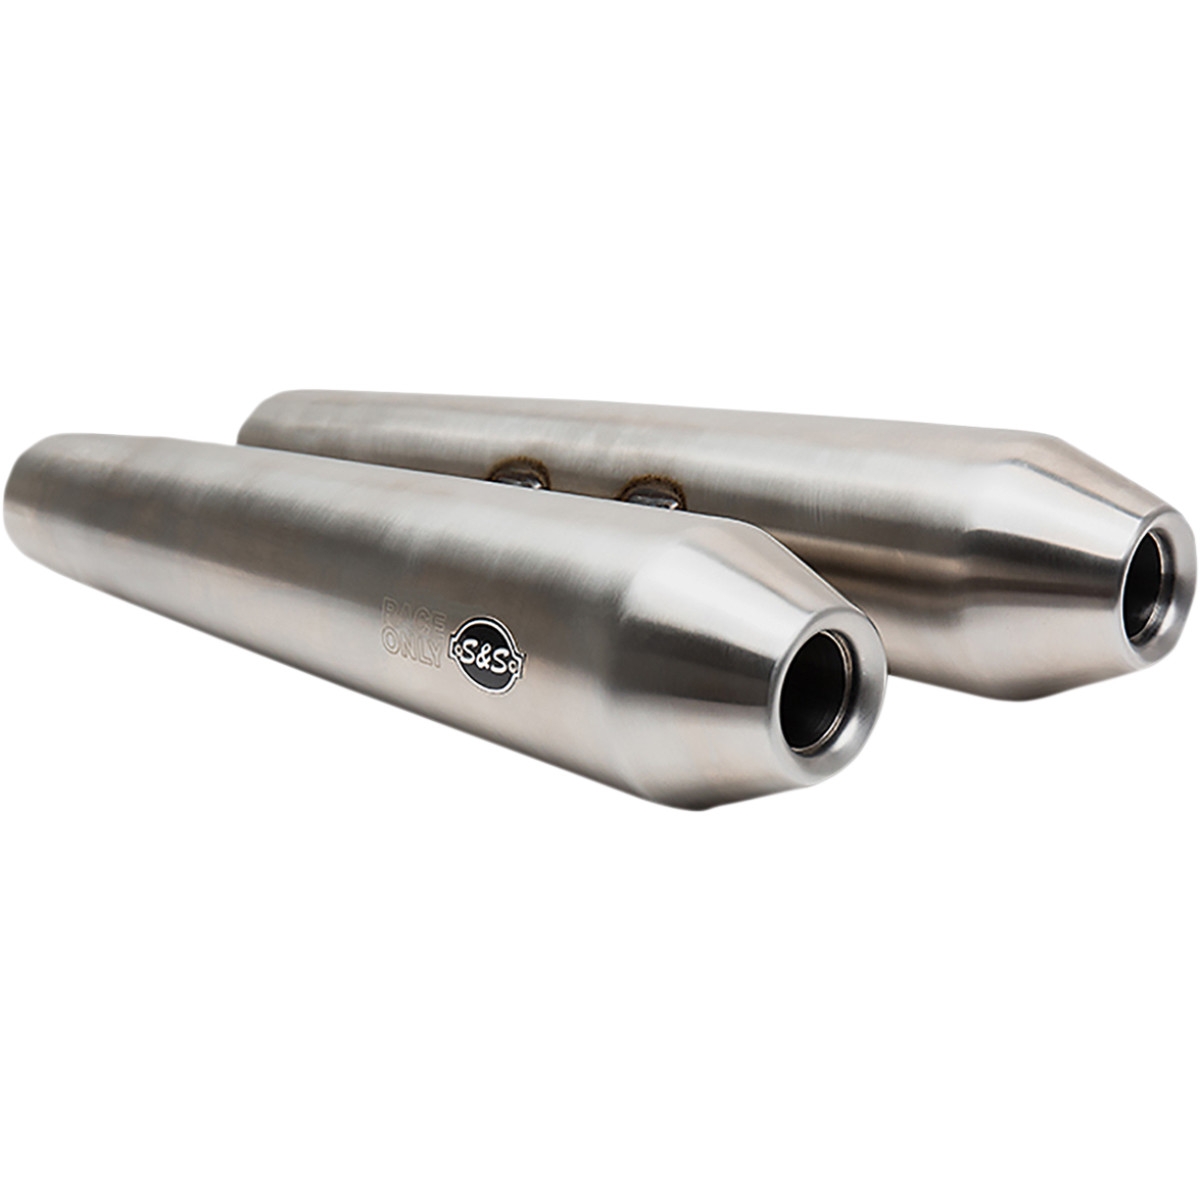 s s cycle slip on pair of stainless steel performance exhaust silencers